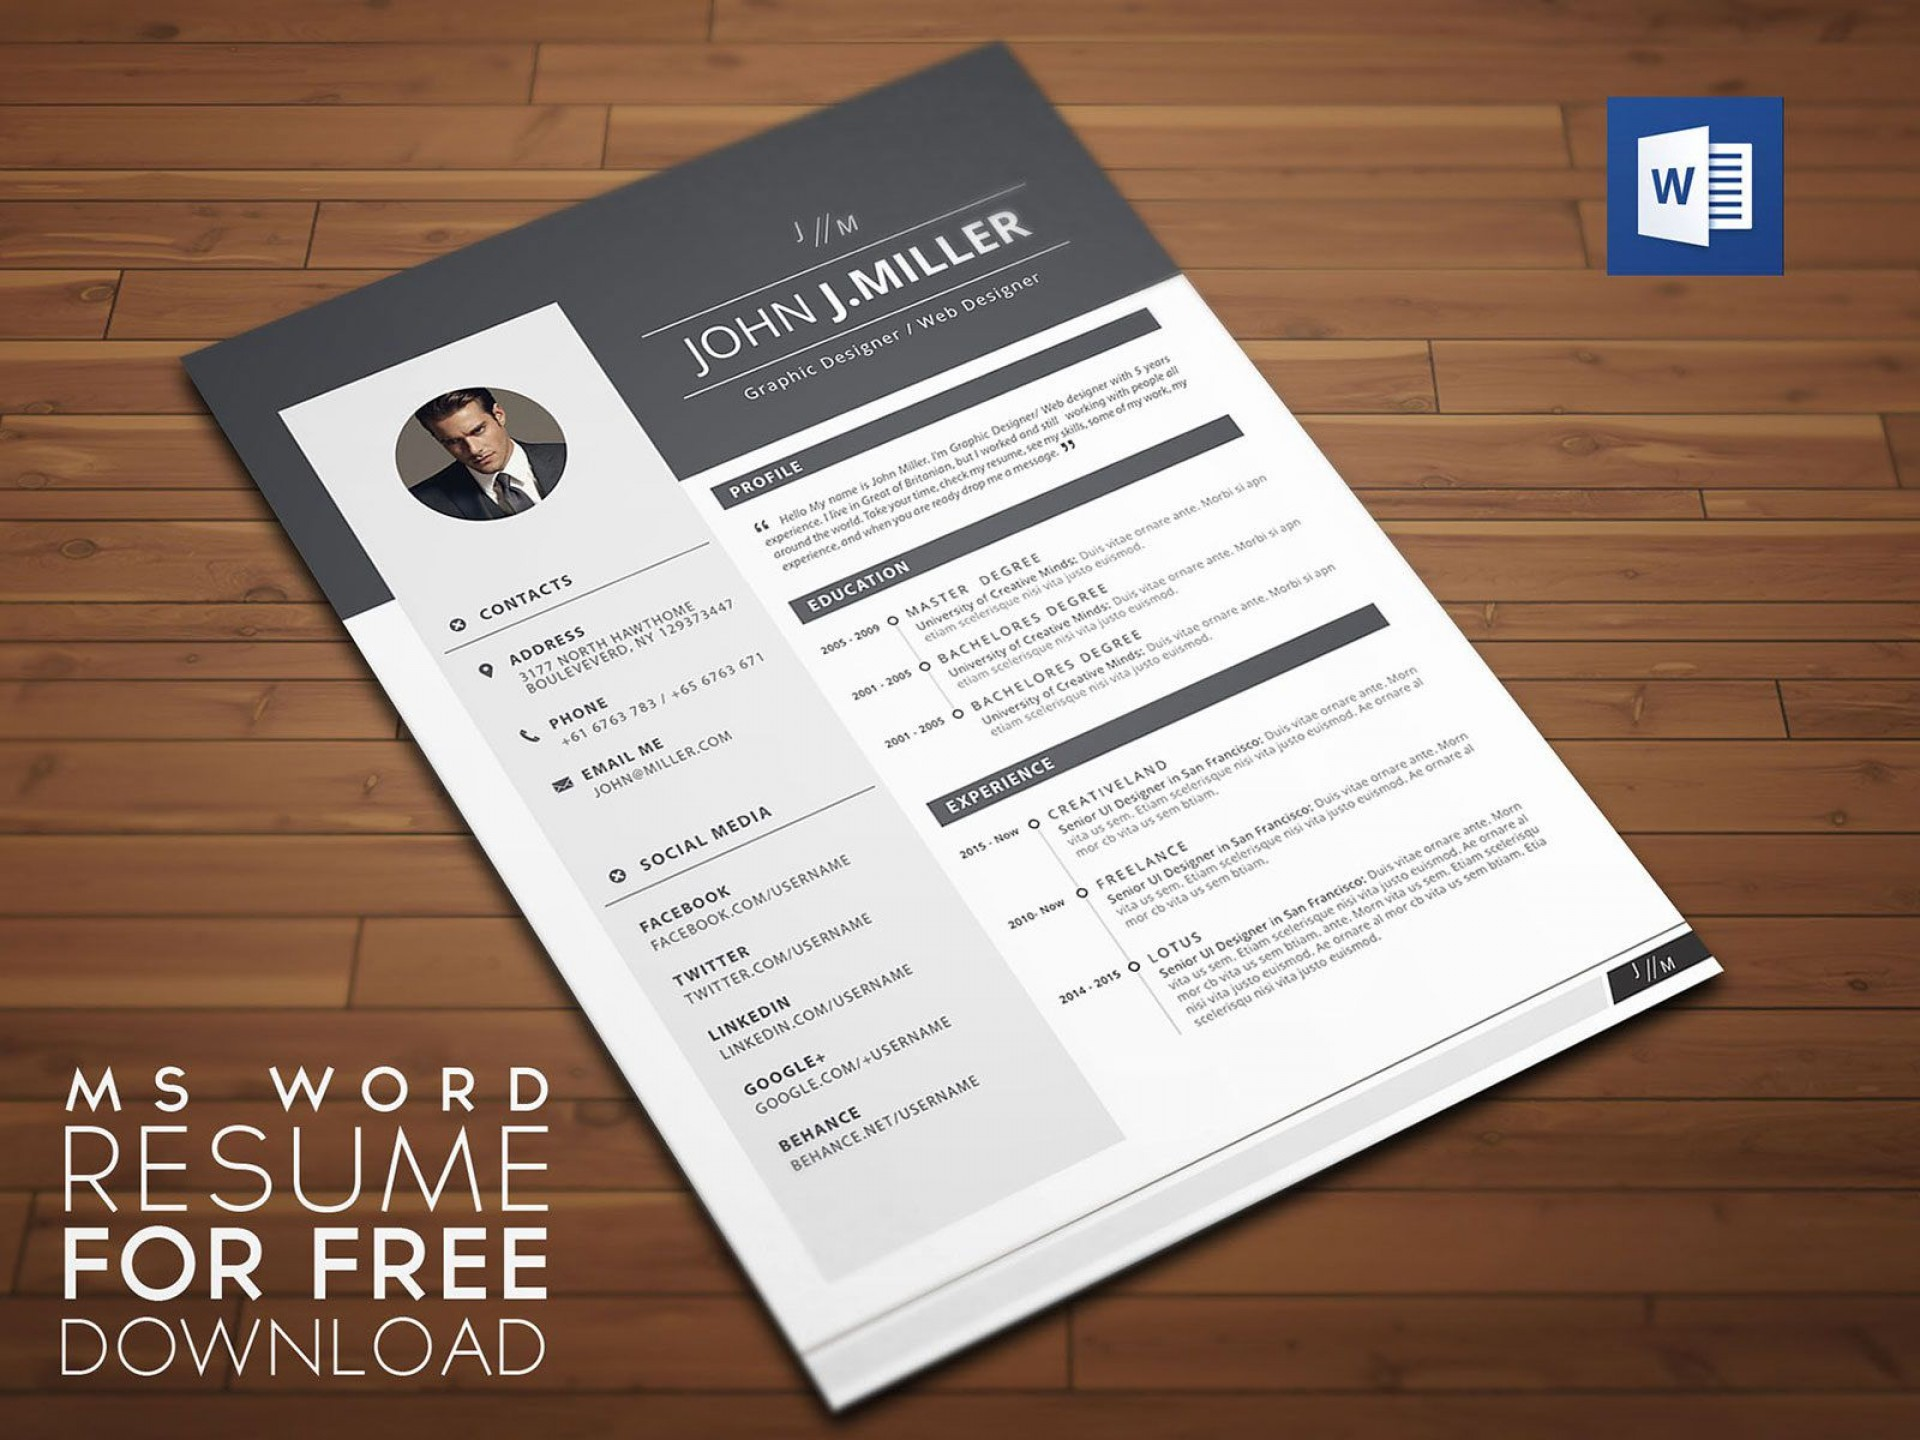 004 Amazing Download Resume Template Word 2018 Photo  Free1920